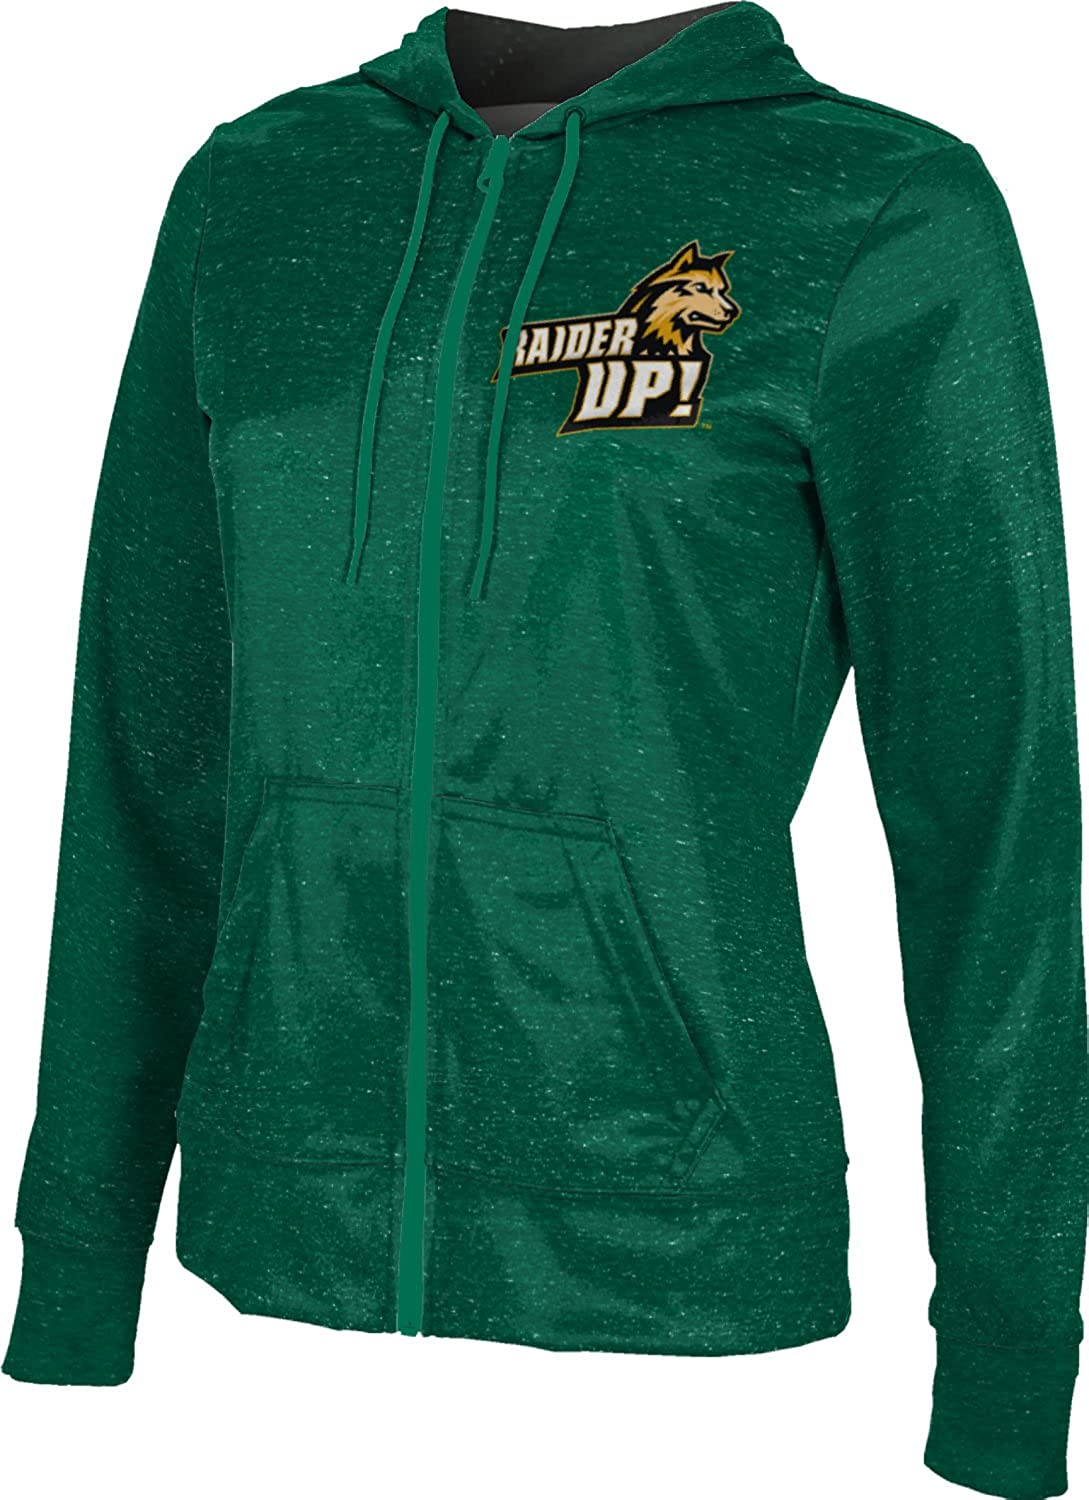 Los Angeles Mall Same day shipping ProSphere Wright State University Girls' School Zipper S Hoodie